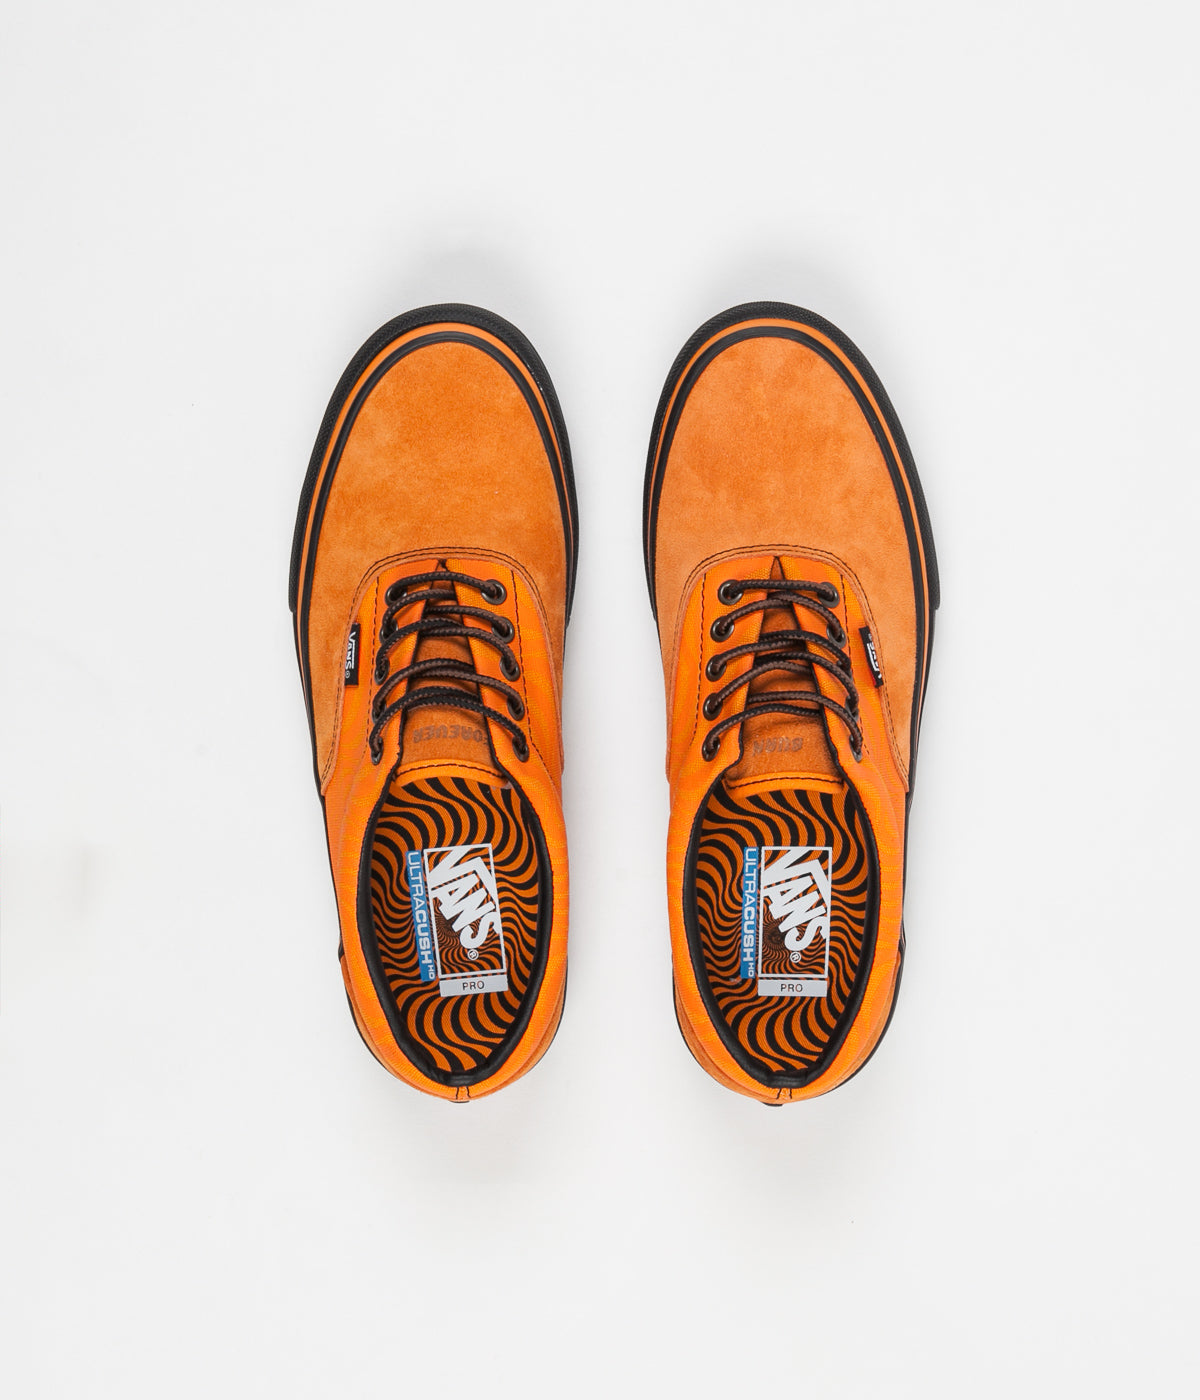 074f9192fff5 Vans x Spitfire Era Pro Shoes - Cardiel   Orange ...